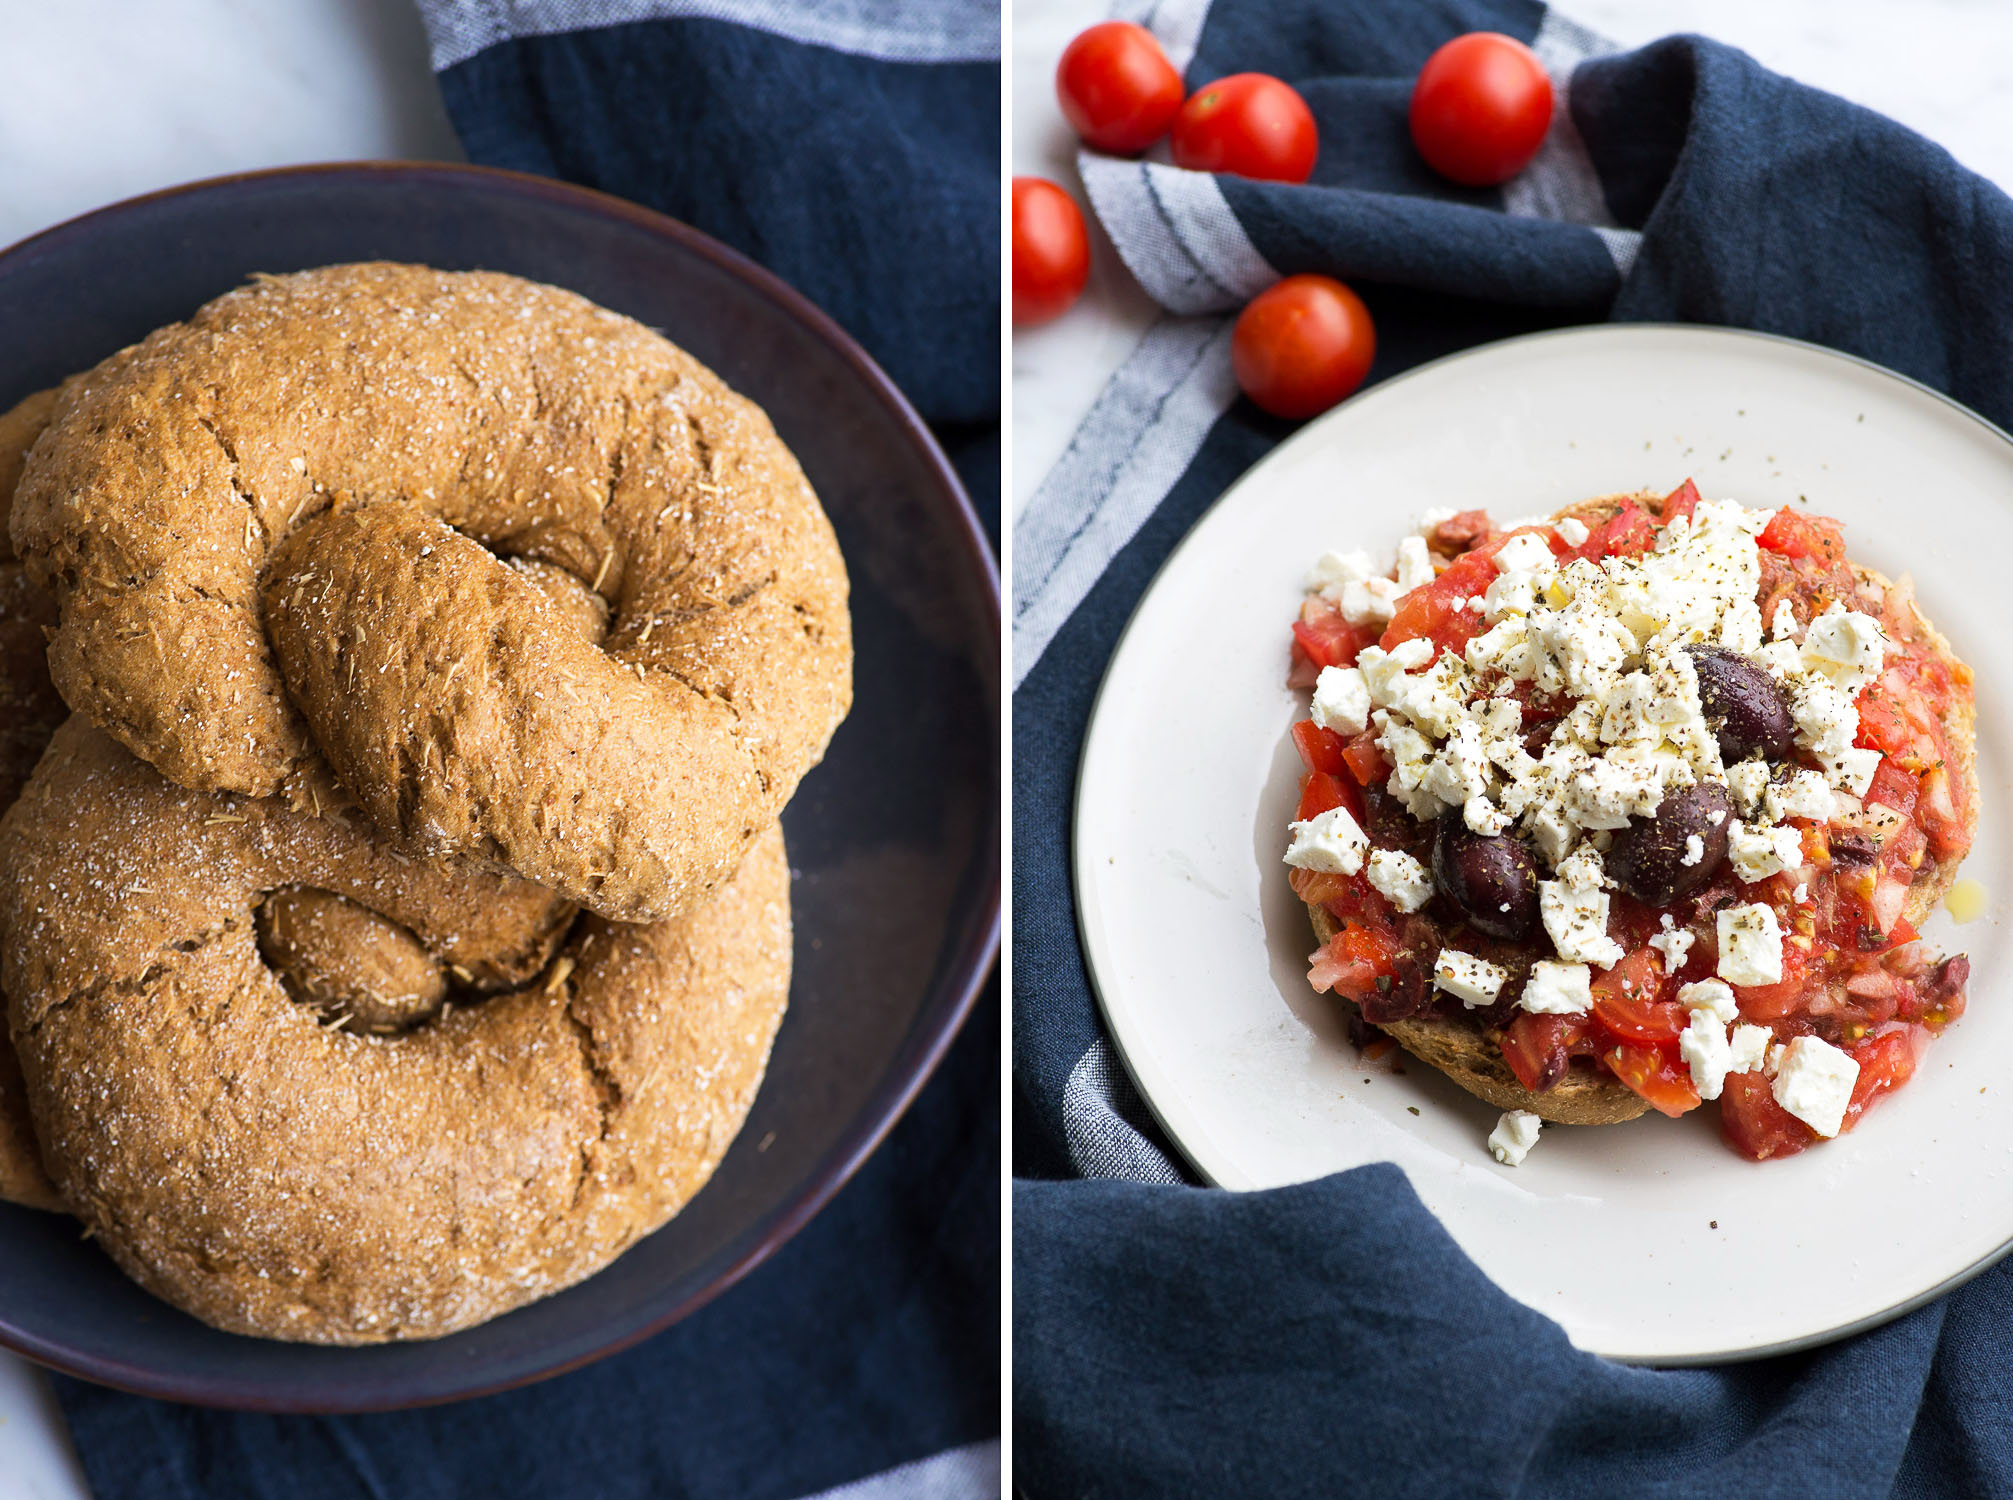 "Cretan 'Dakos' Barley Rusk with Tomato, Feta, Olives. <div class=""hrecipe jetpack-recipe"" itemscope itemtype=""https://schema.org/Recipe""><div class=""jetpack-recipe-content""></div></div>"